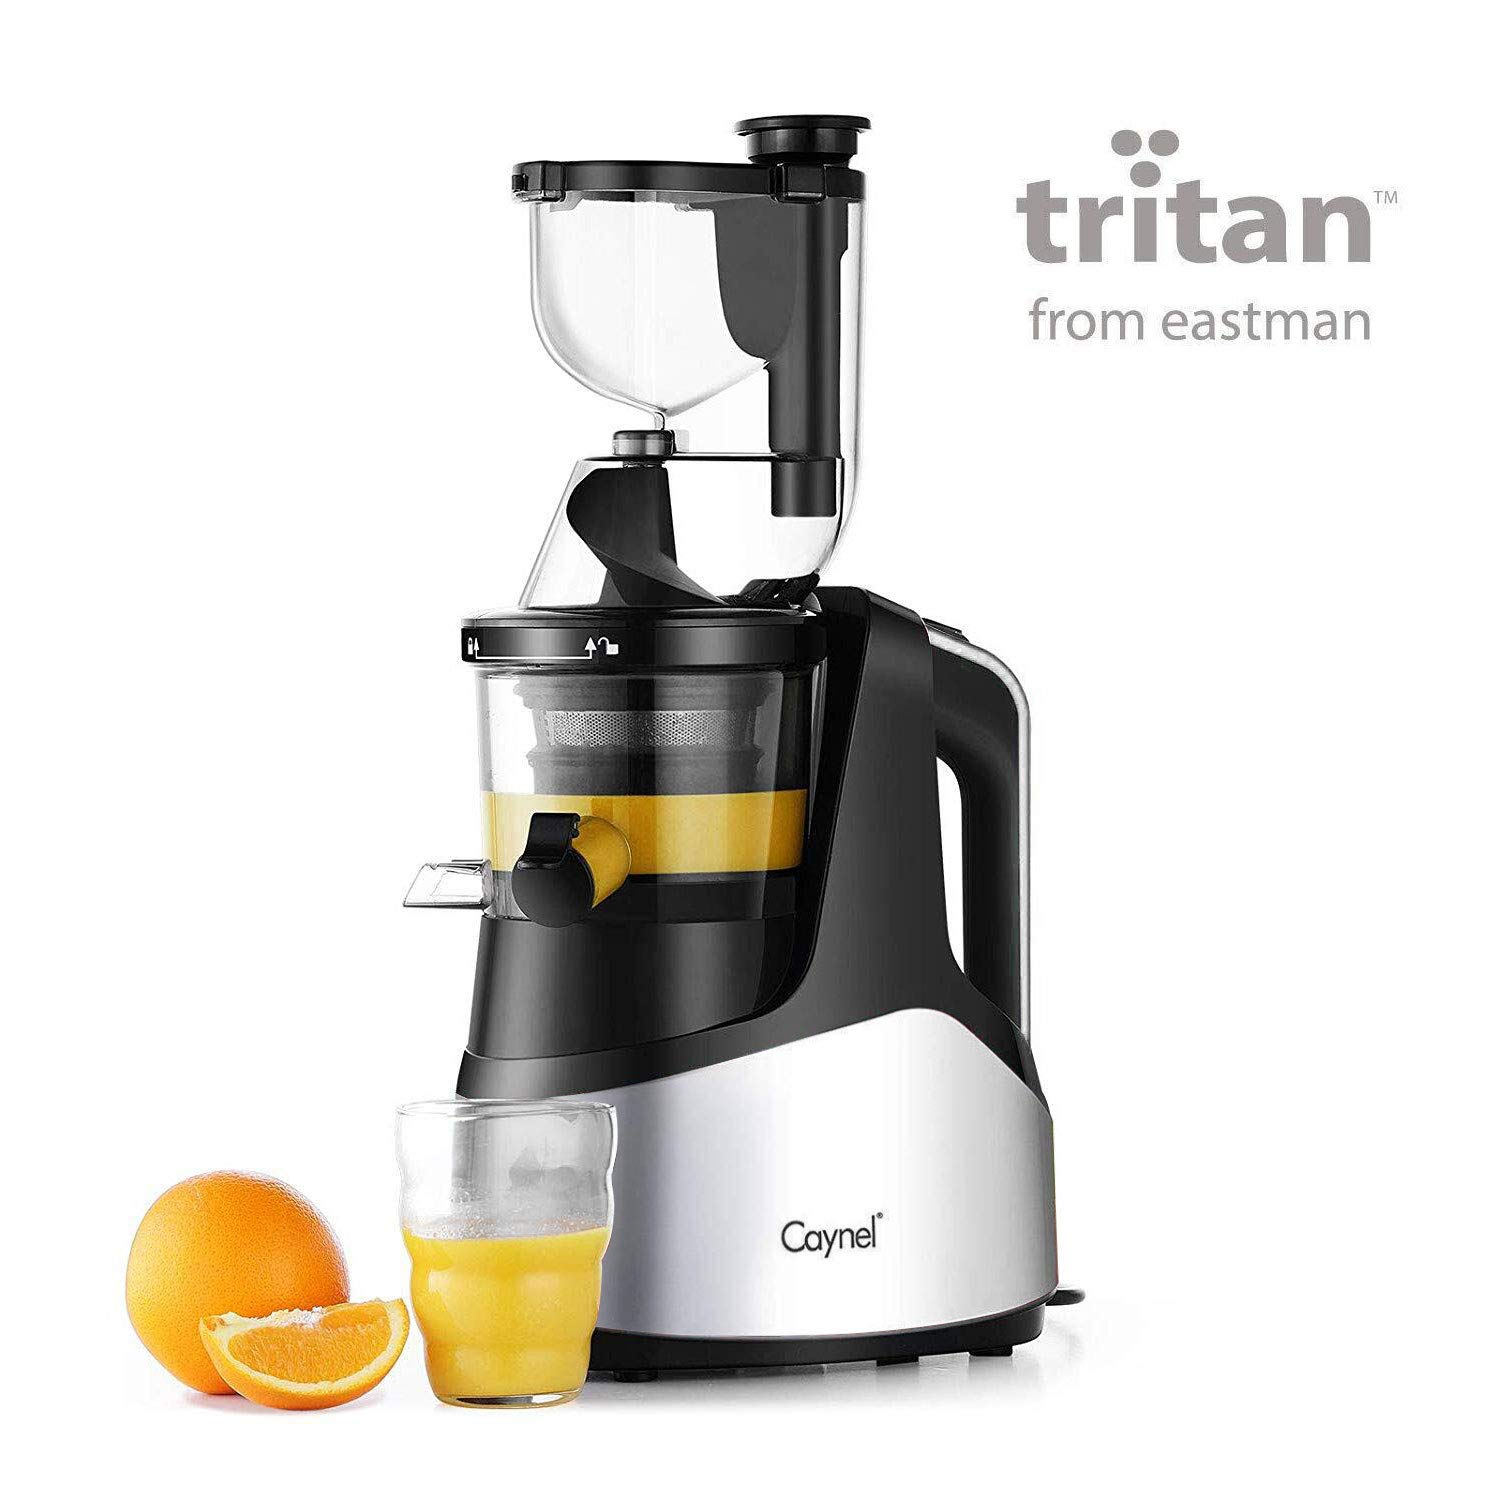 Slow Masticating Juicer Caynel Cold Press Extractor with 3'' Wide Chute for Fruits, Vegetables and Herbs, Quiet Durable Motor with Reverse Function, Smoothie Strainer Included, High Yield Vertical Juicer Easy Cleaning , BPA Free (Silver)